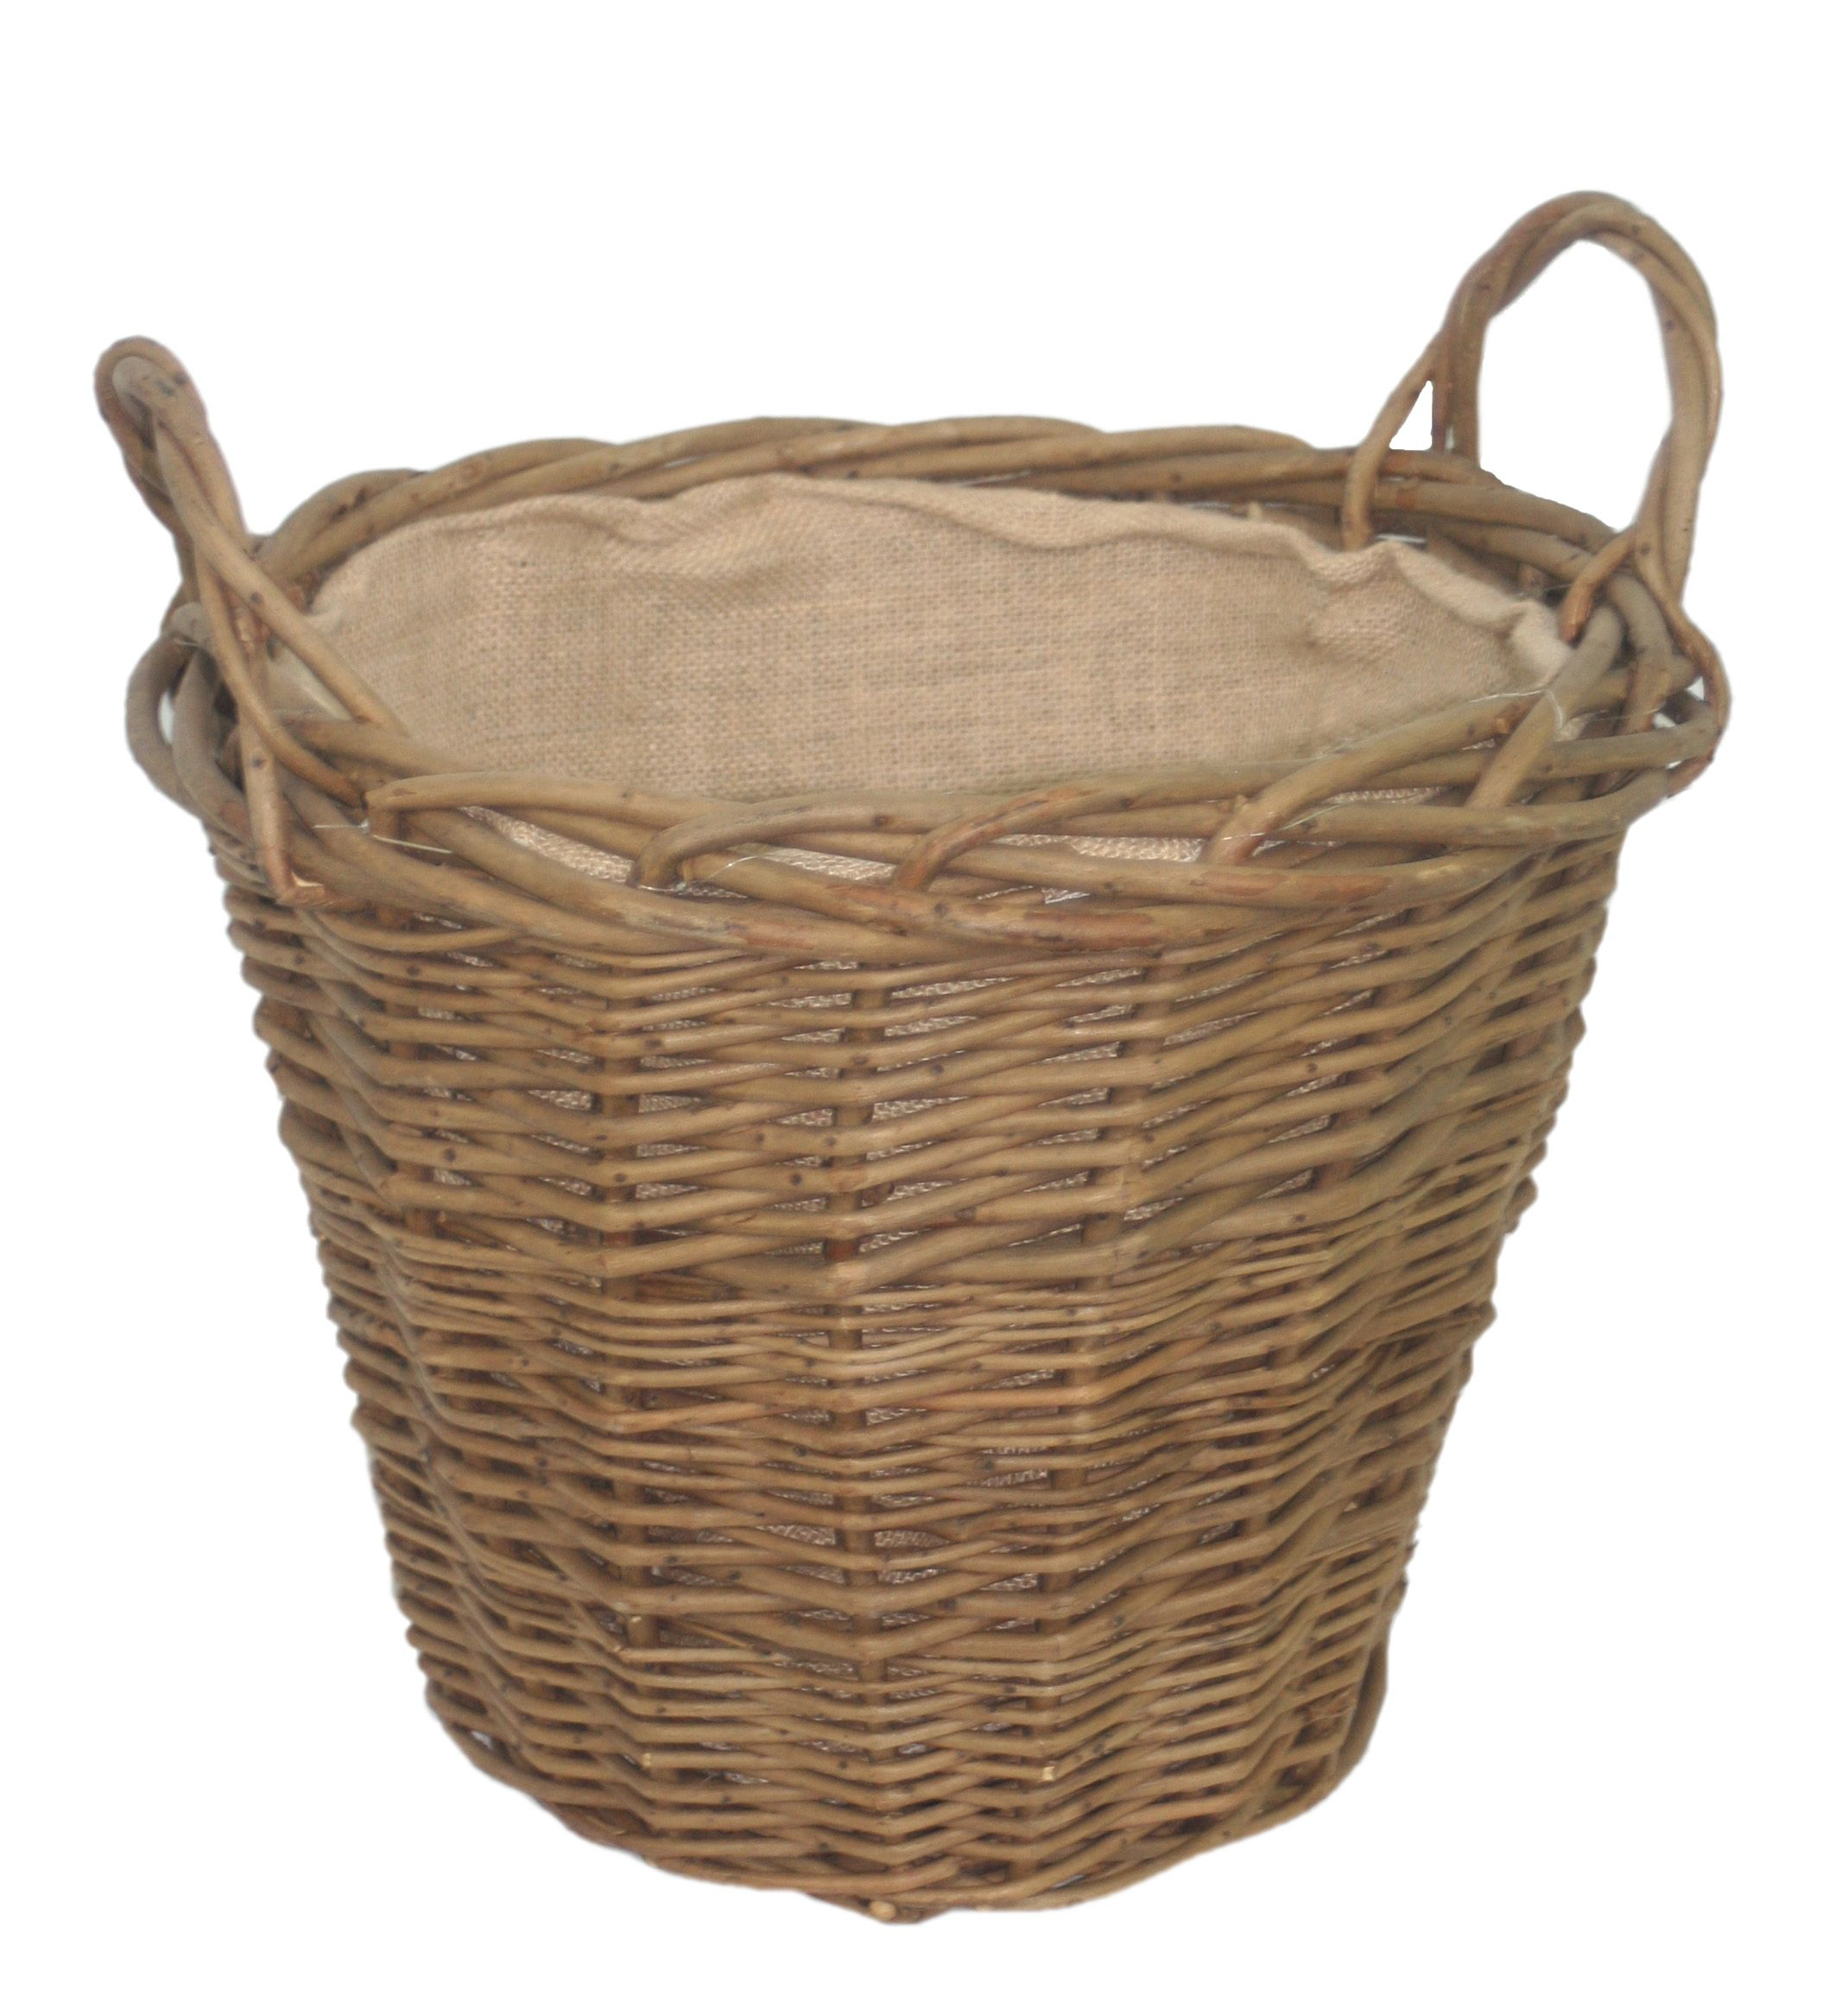 A Handmade, Thick Green Ash Round Log Basket With Handles. A Versatile Log  Baskets That Is Ideal For Use Within The Home, Shed, Garage And More. Nice Design